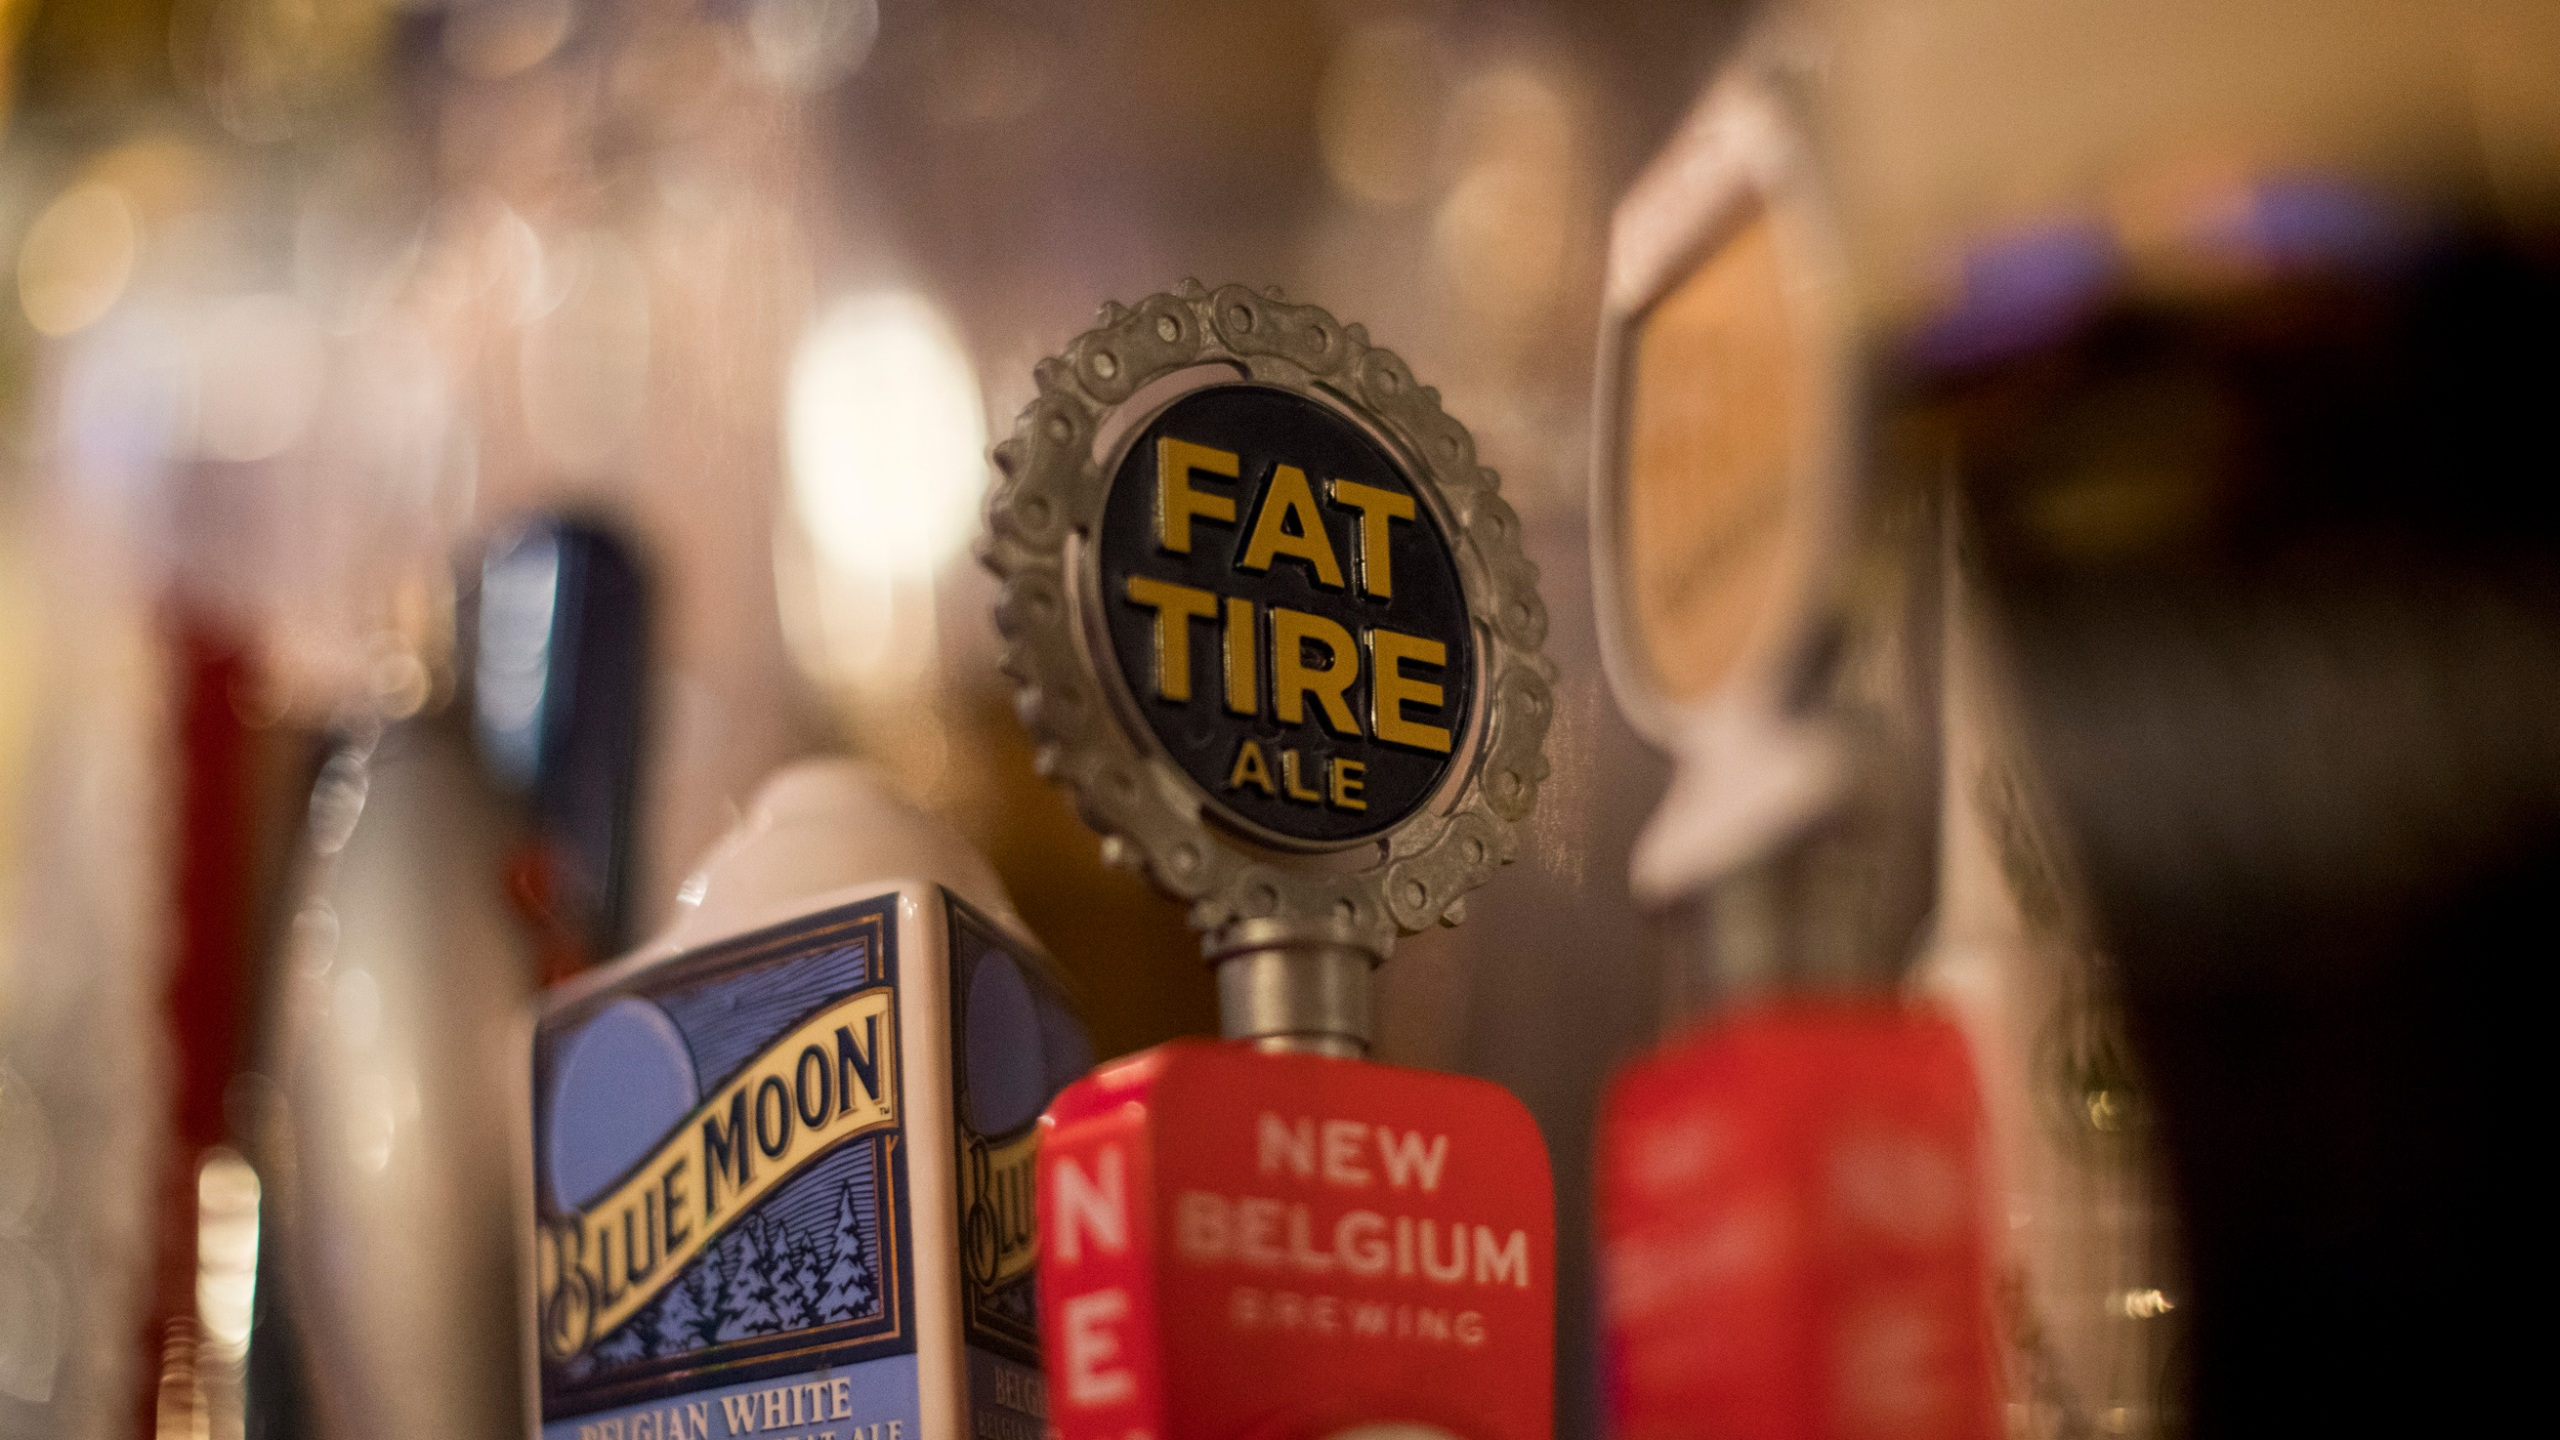 This Dec. 25, 2018, photo shows a Fat Tire tap handle at a bar at the Back Bowl bowling alley in Eagle, Colo. (AP Photo/Jenny Kane)